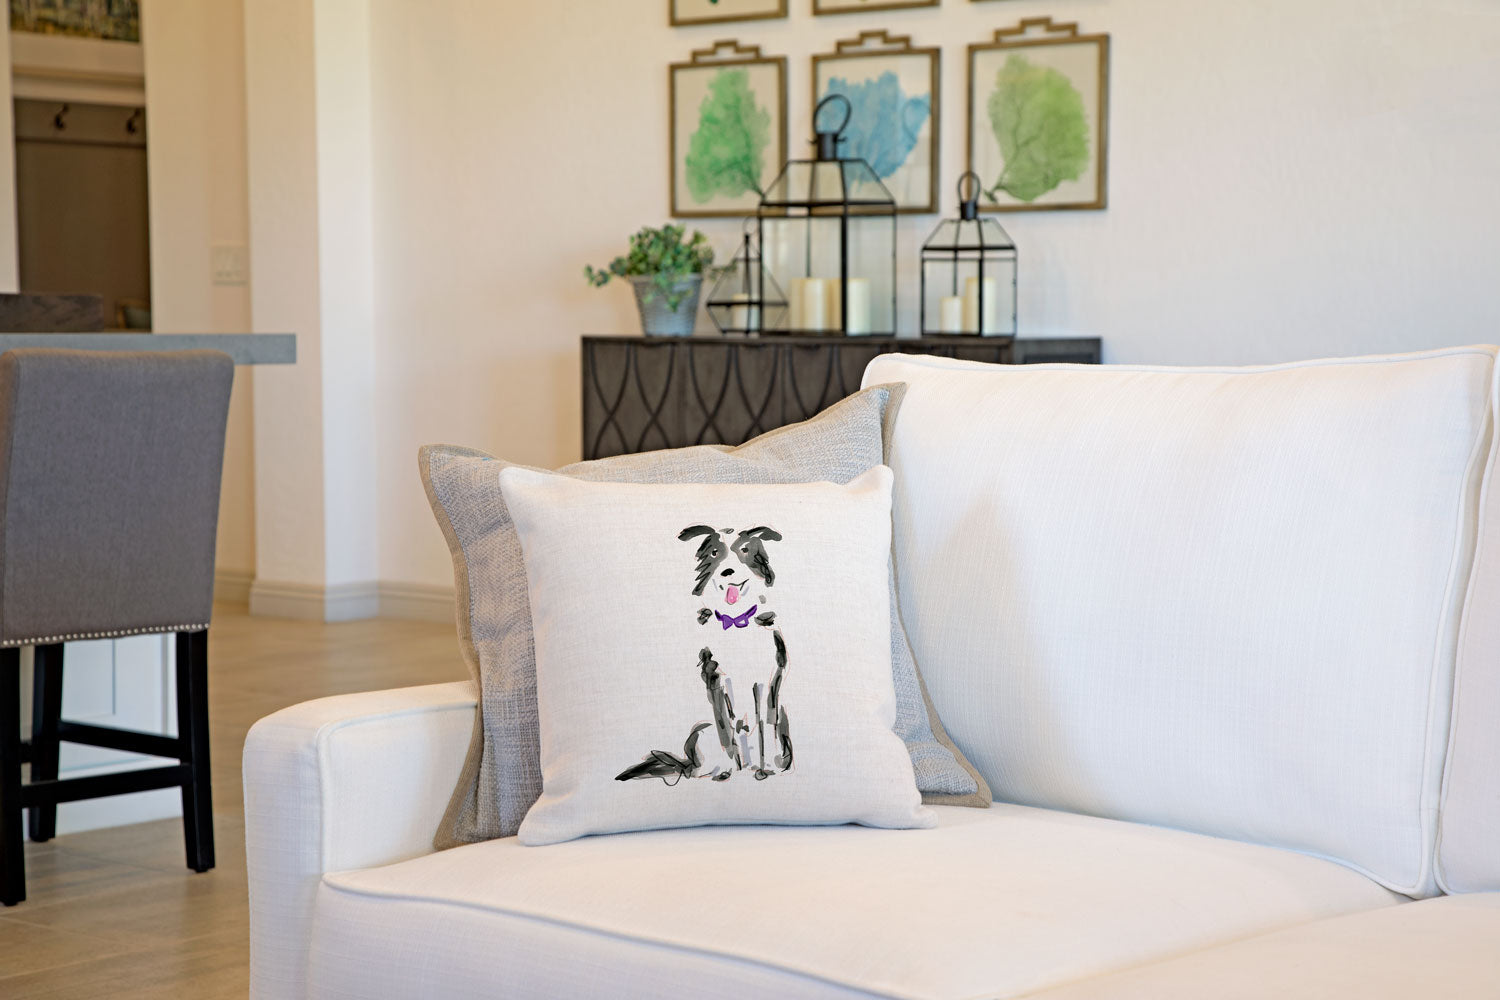 Benji Border Collie Throw Pillow Cover - Dog Illustration Throw Pillow Cover Collection-Di Lewis